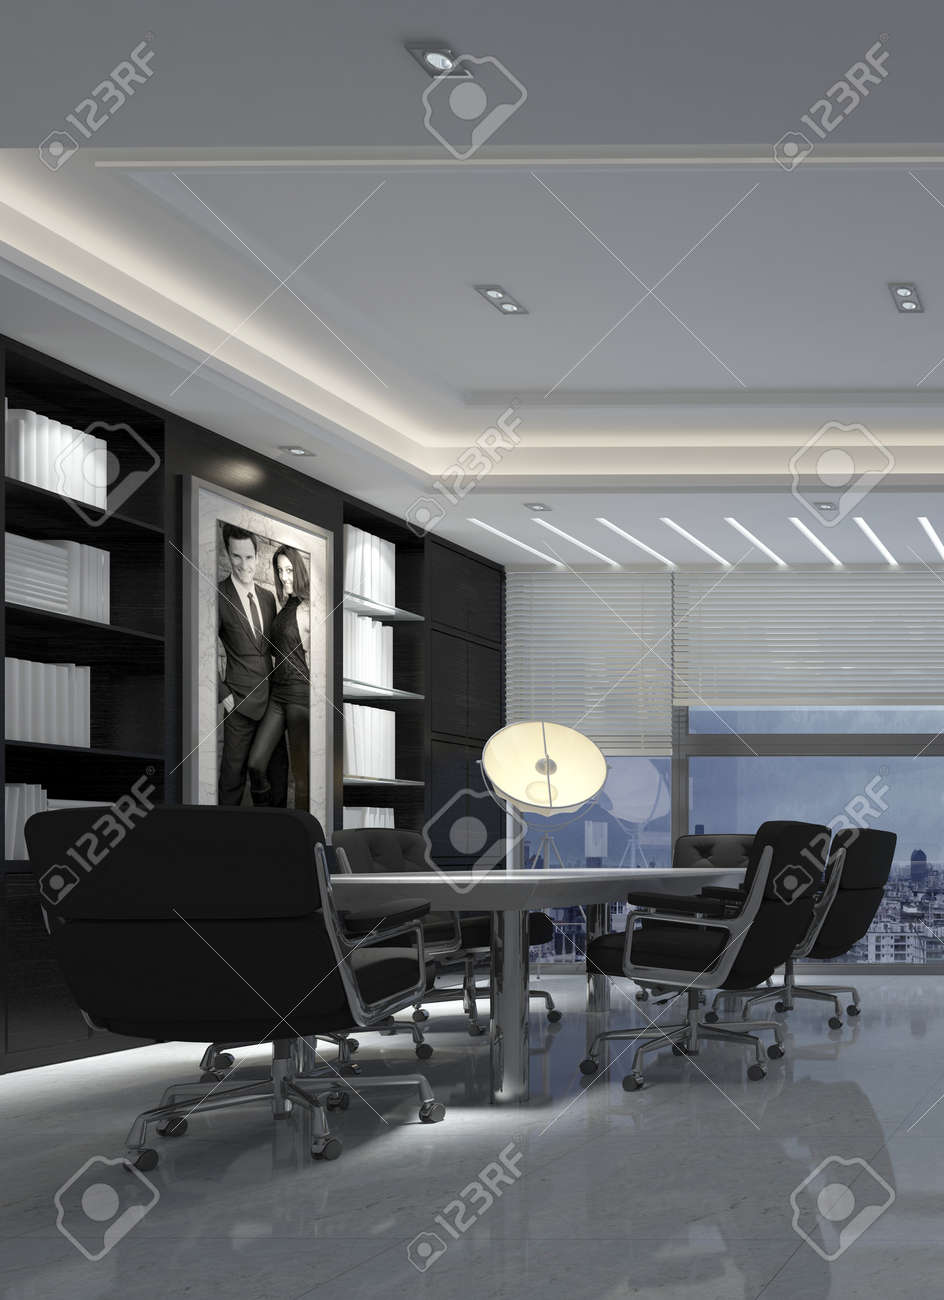 3d Render Of A Modern Black And White Dining Room Interior Decor Stock Photo Picture And Royalty Free Image Image 50409949